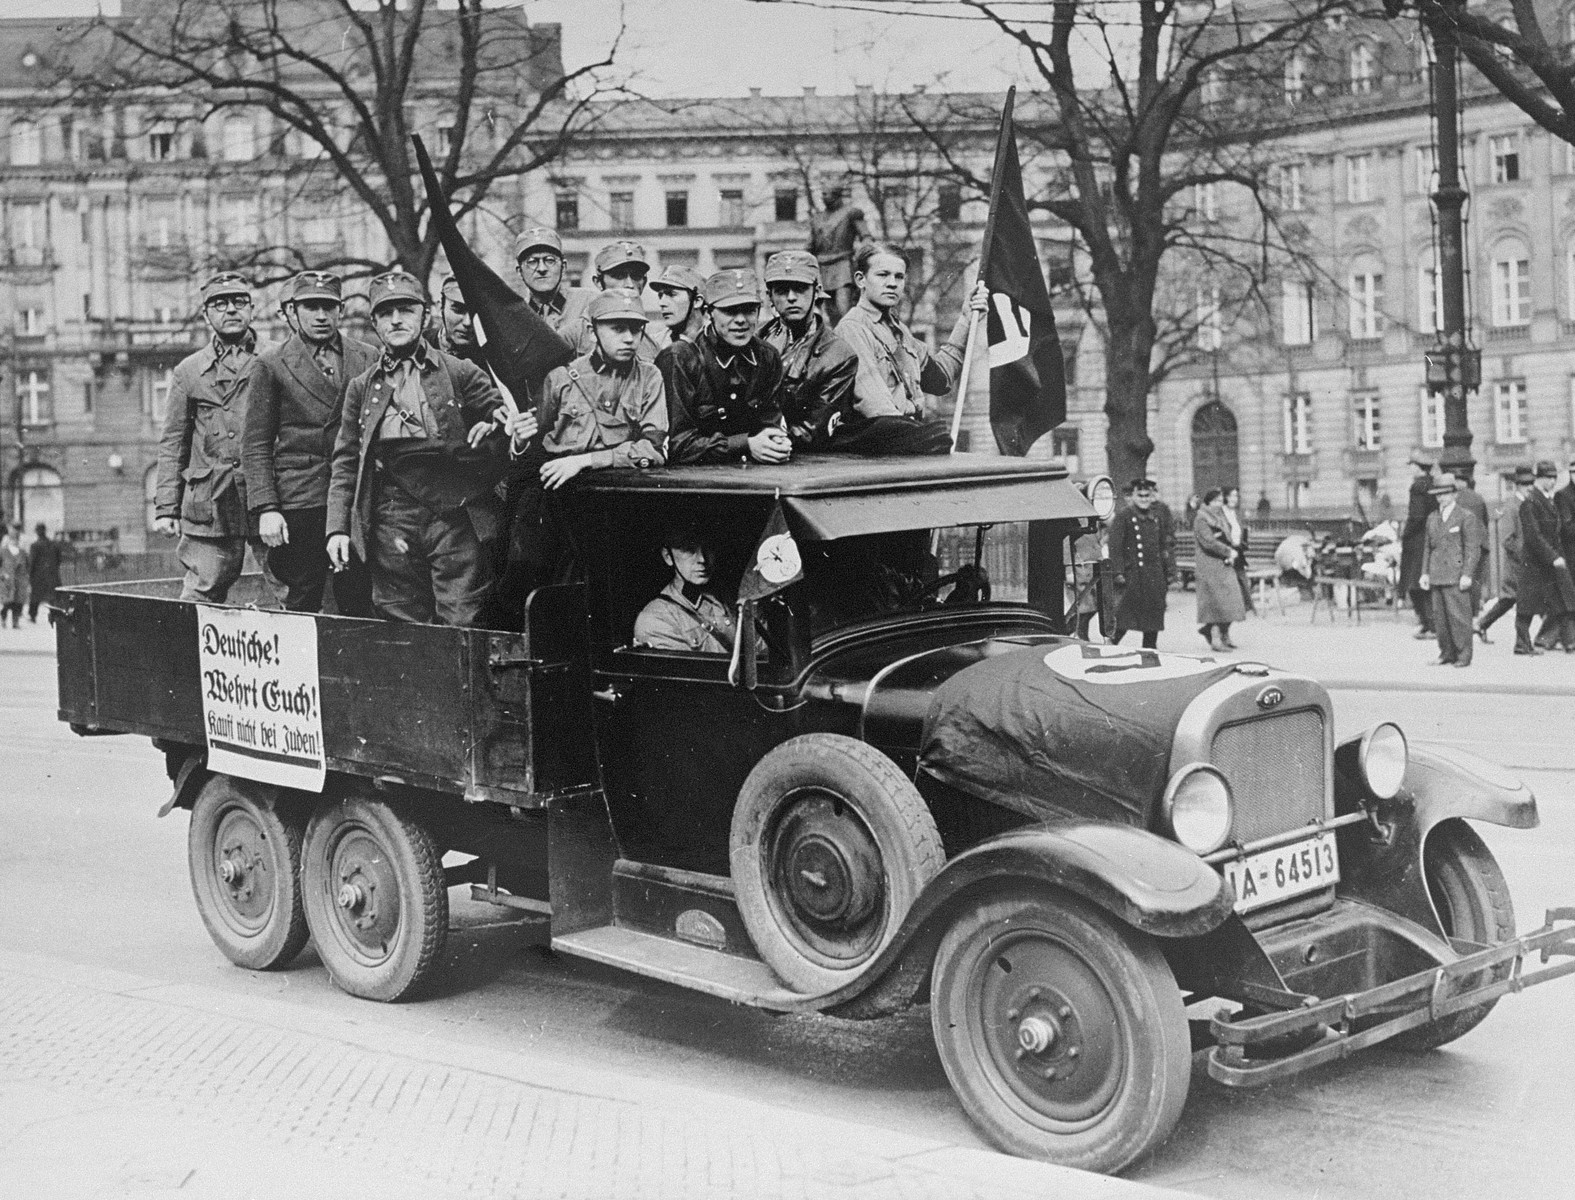 A group of SA members ride through the streets of Berlin in the back of a truck, exhorting Germans to boycott Jewish businesses.